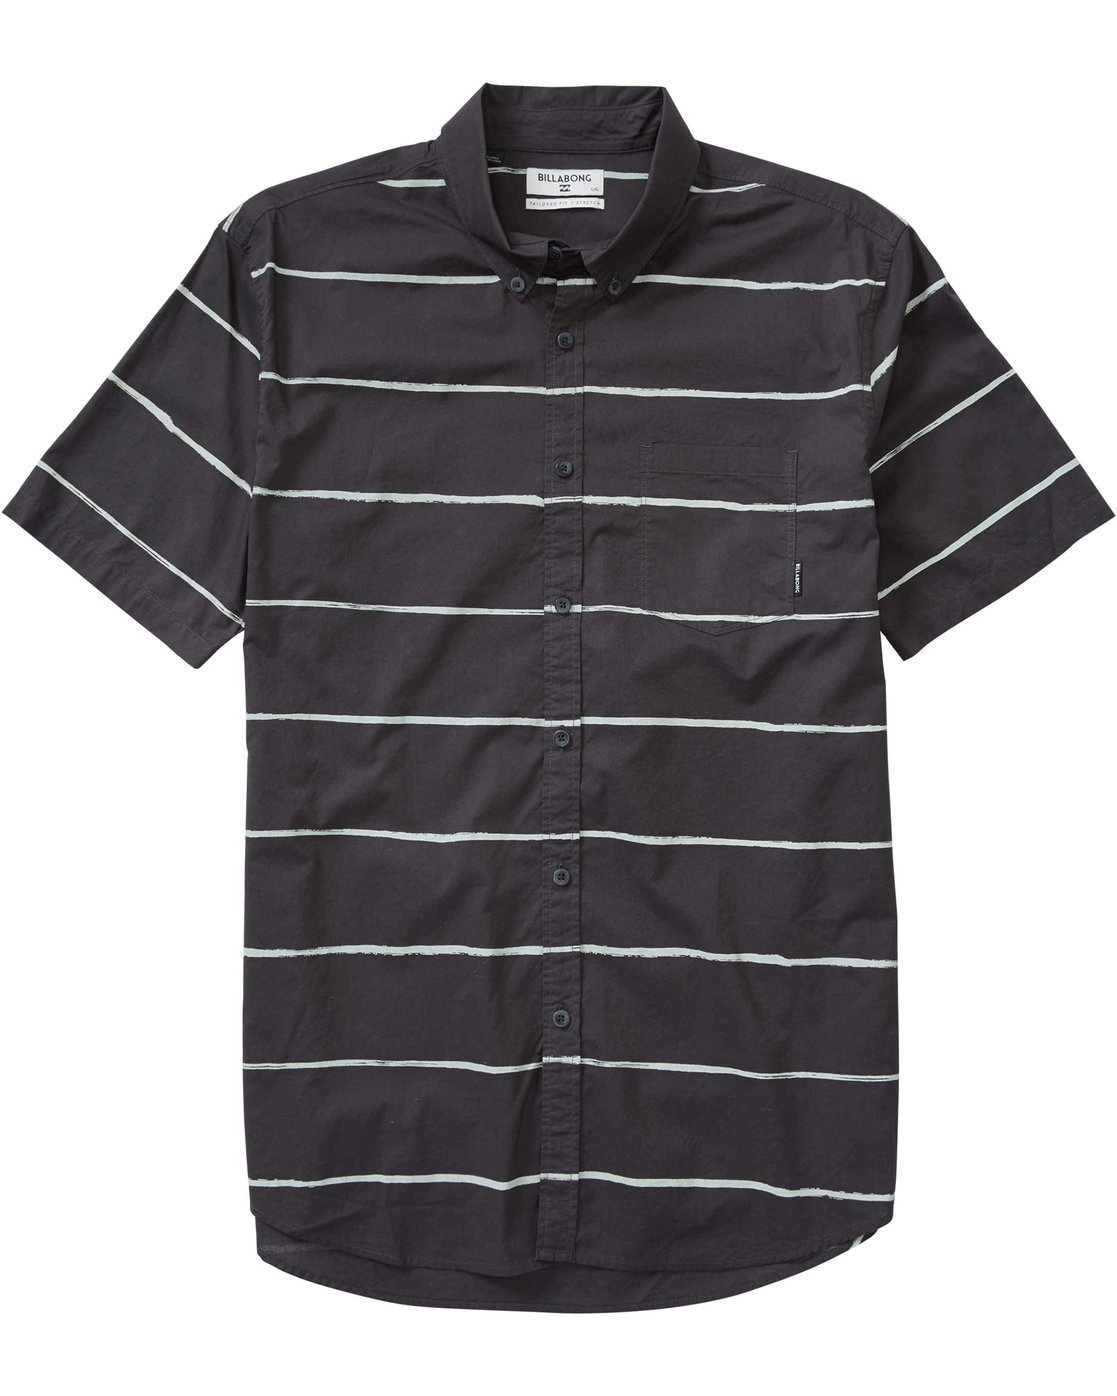 Billabong Mens Sundays Lines Short Sleeve Shirt